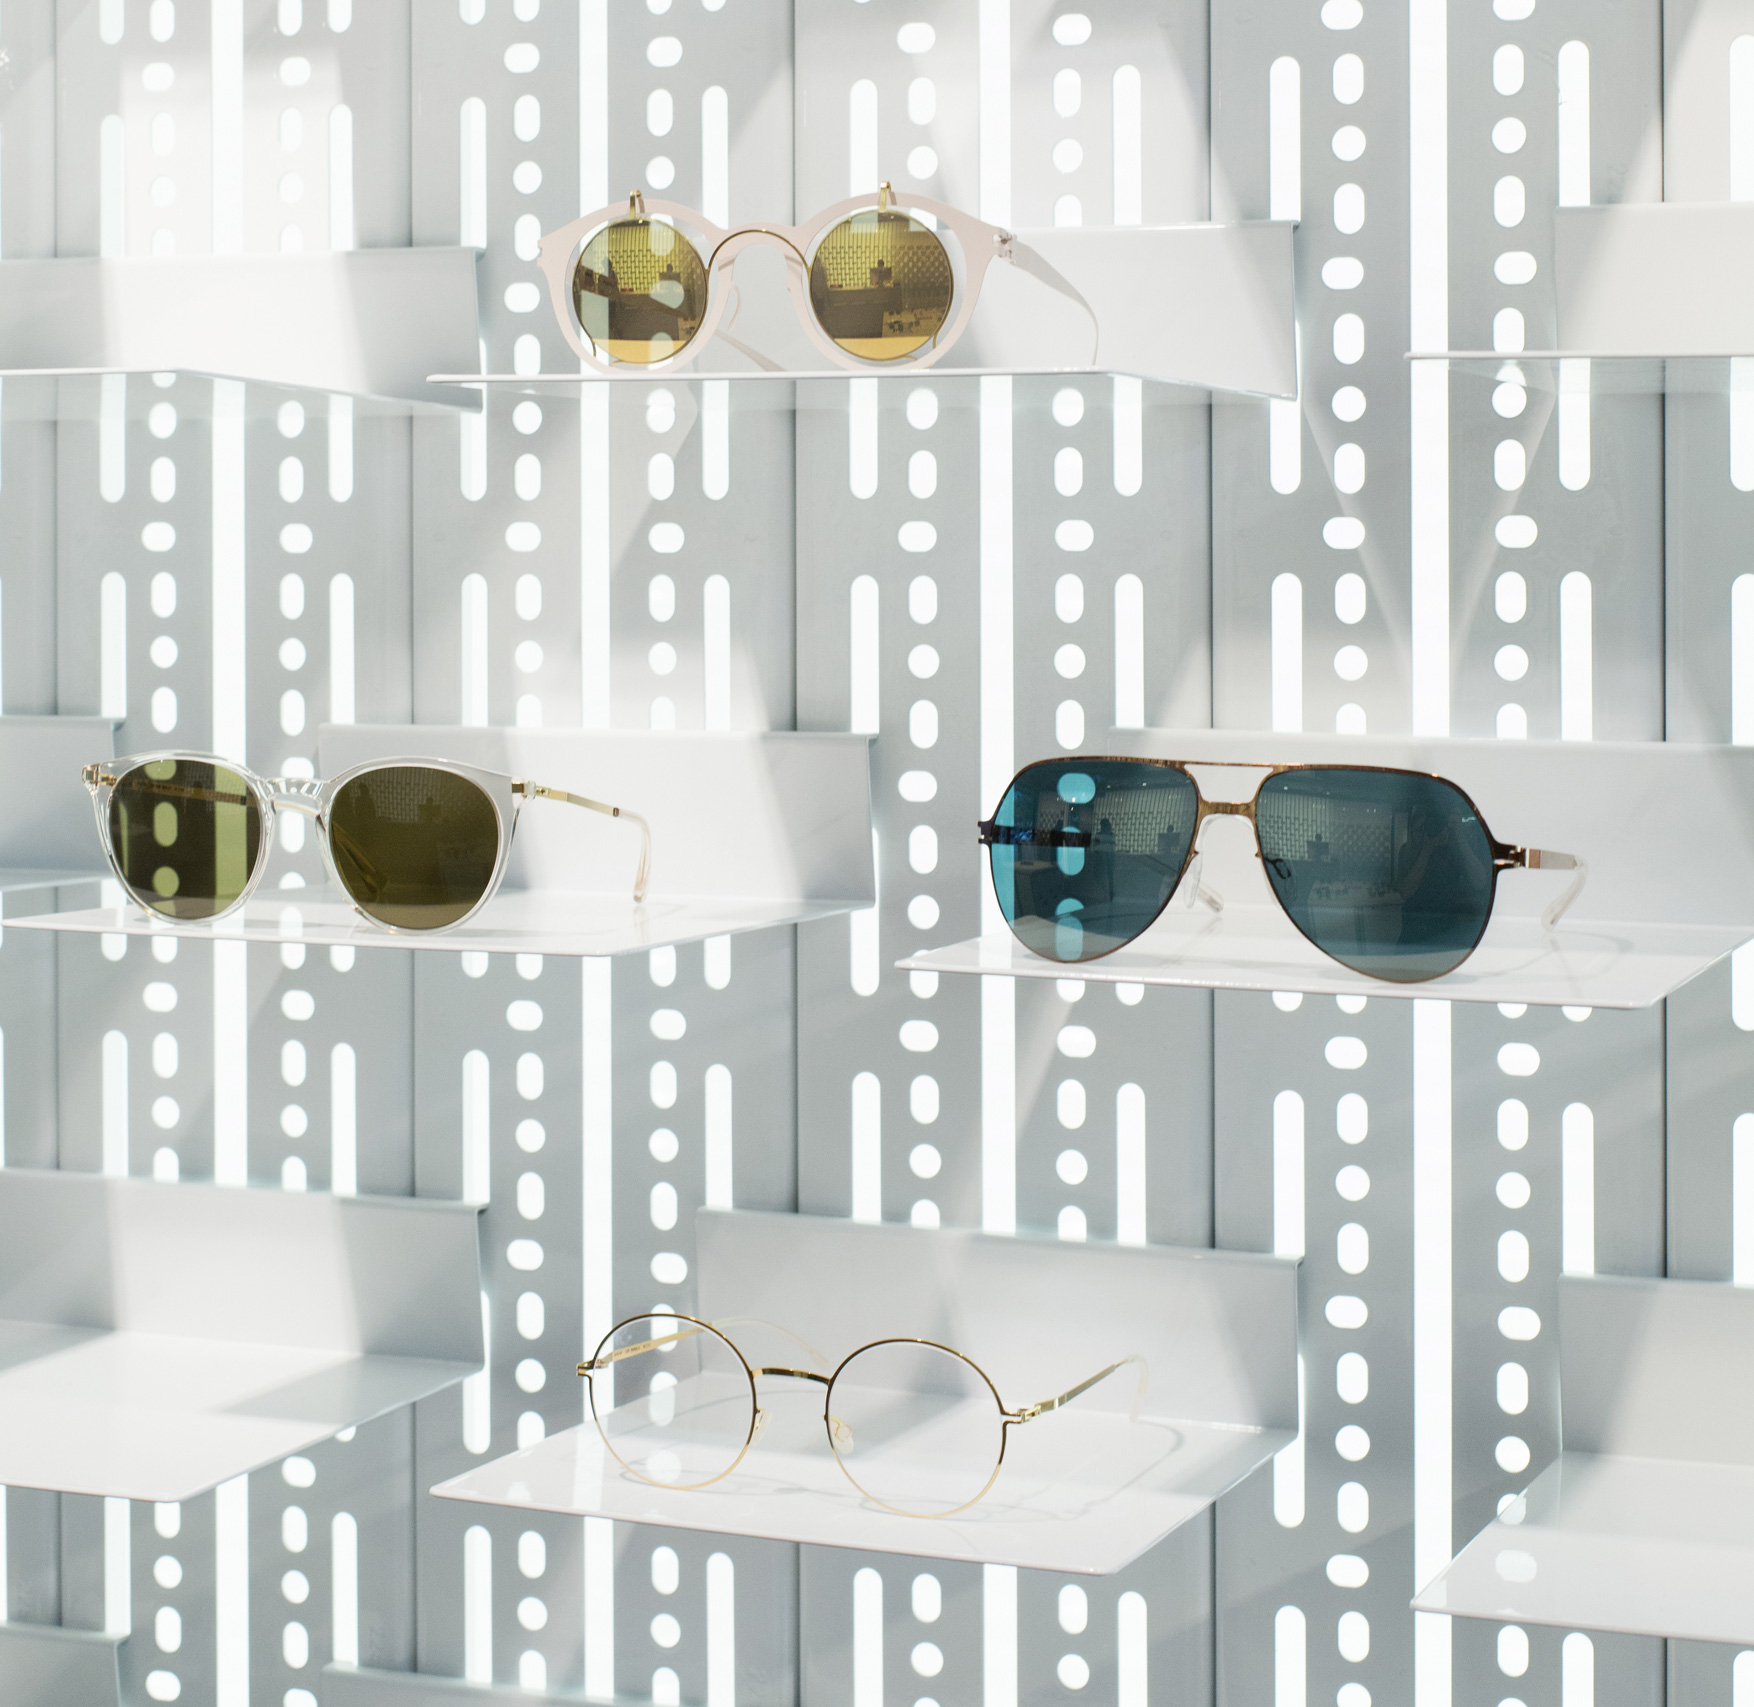 A shopping guide to the eyewear highlights of the season, as well as the evergreens in the MYKITA collection of designer glasses and sunglasses.